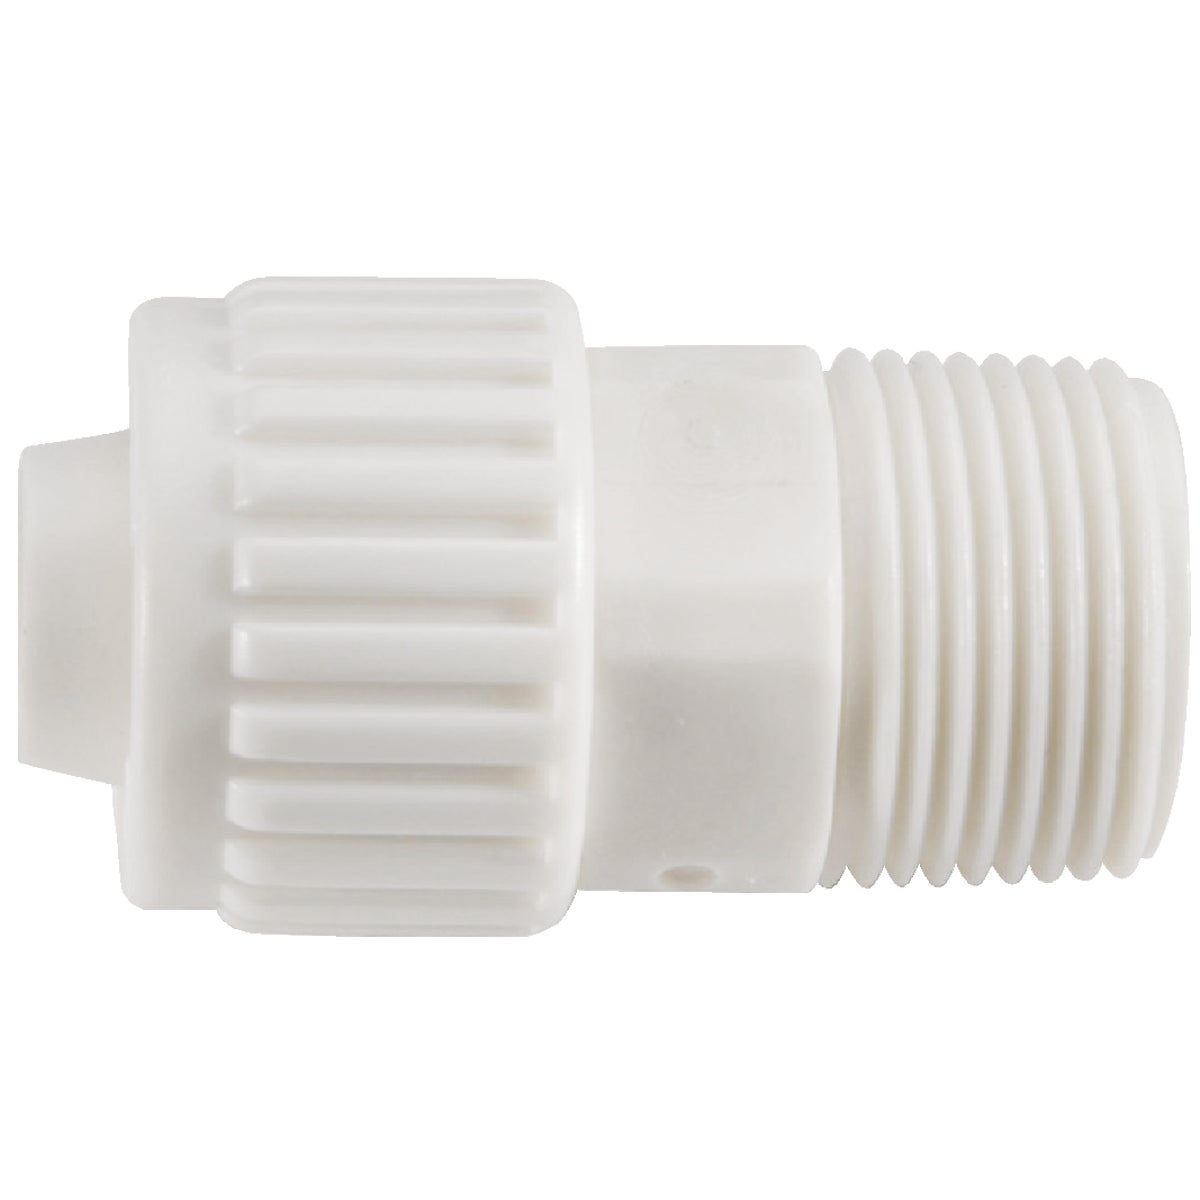 3/8X3/8MPT ADAPTER - 16850 by Flair It West